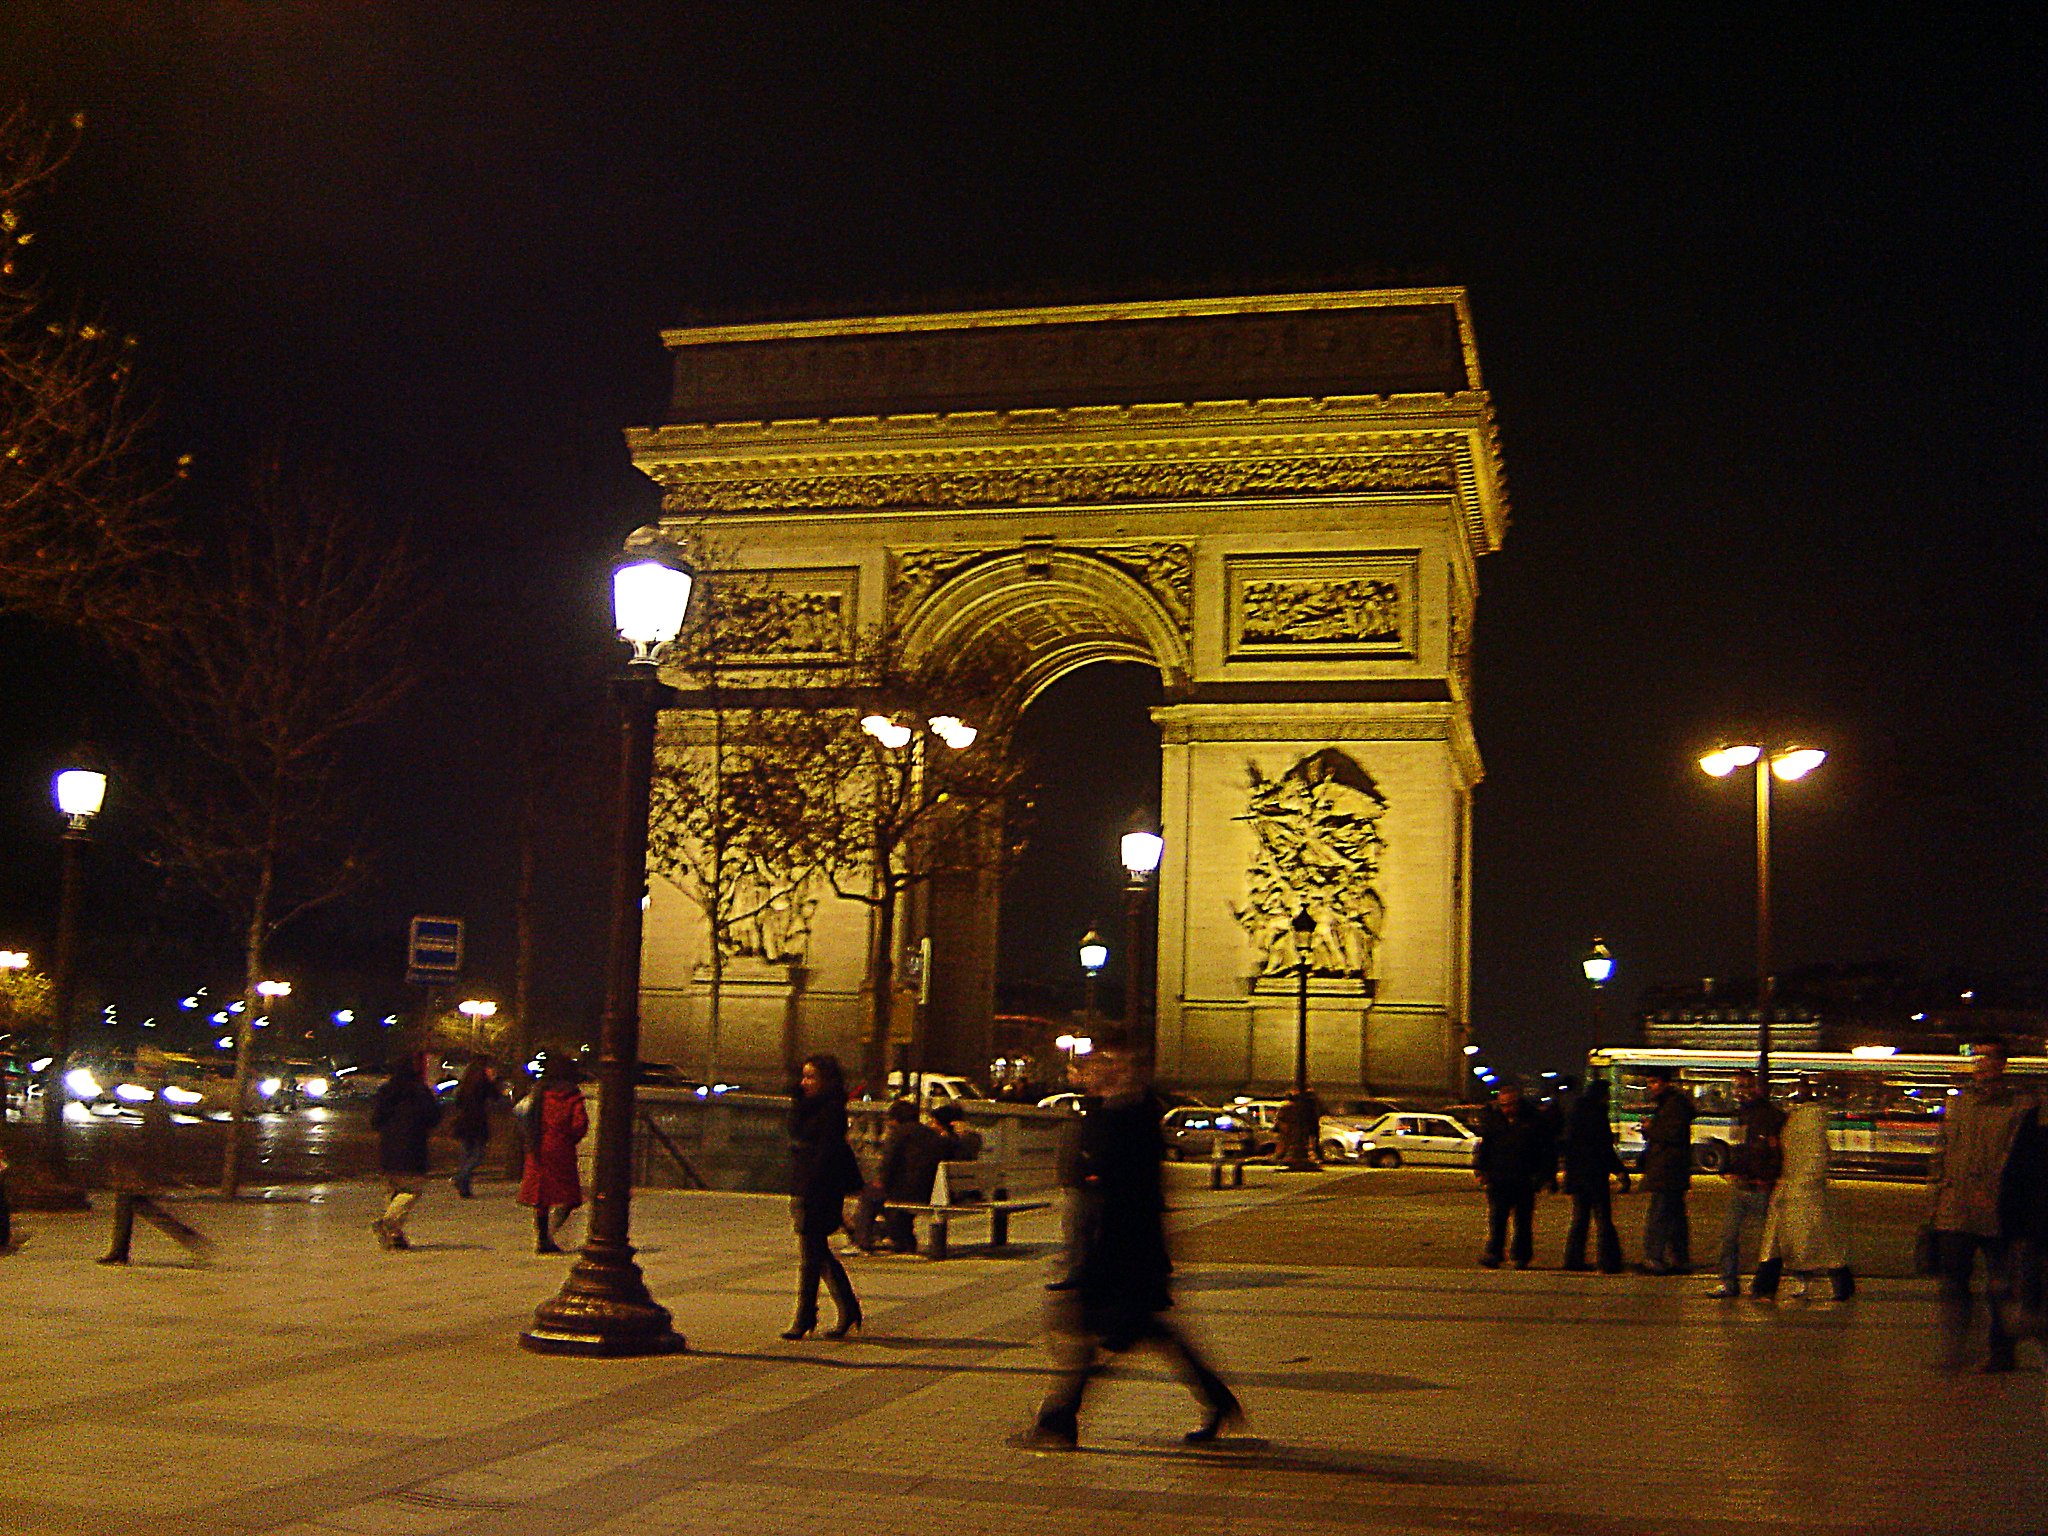 Arc de Triomphe in Paris. Photo by alphacityguides.